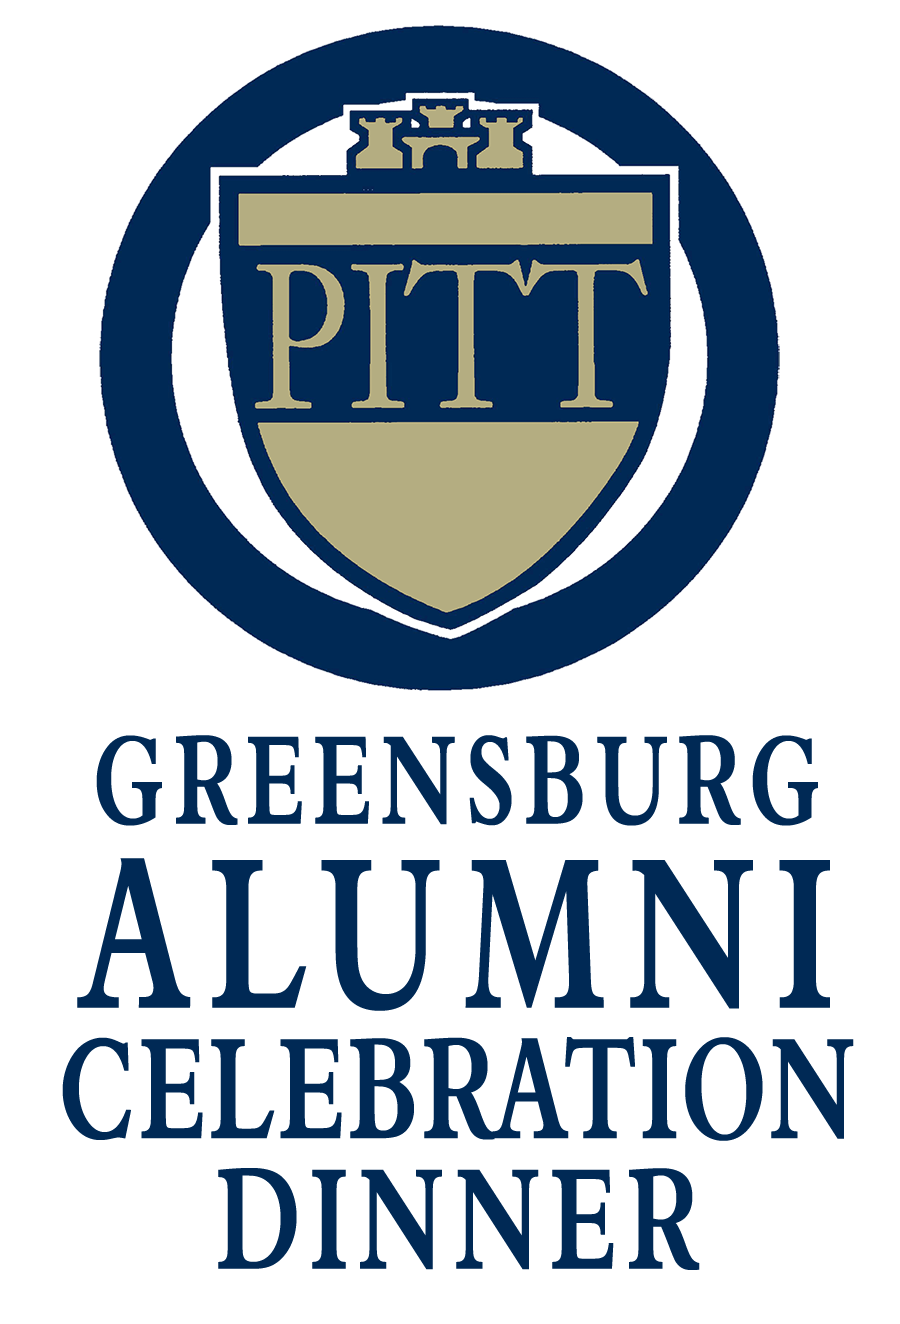 Alumni Celebration Dinner logo